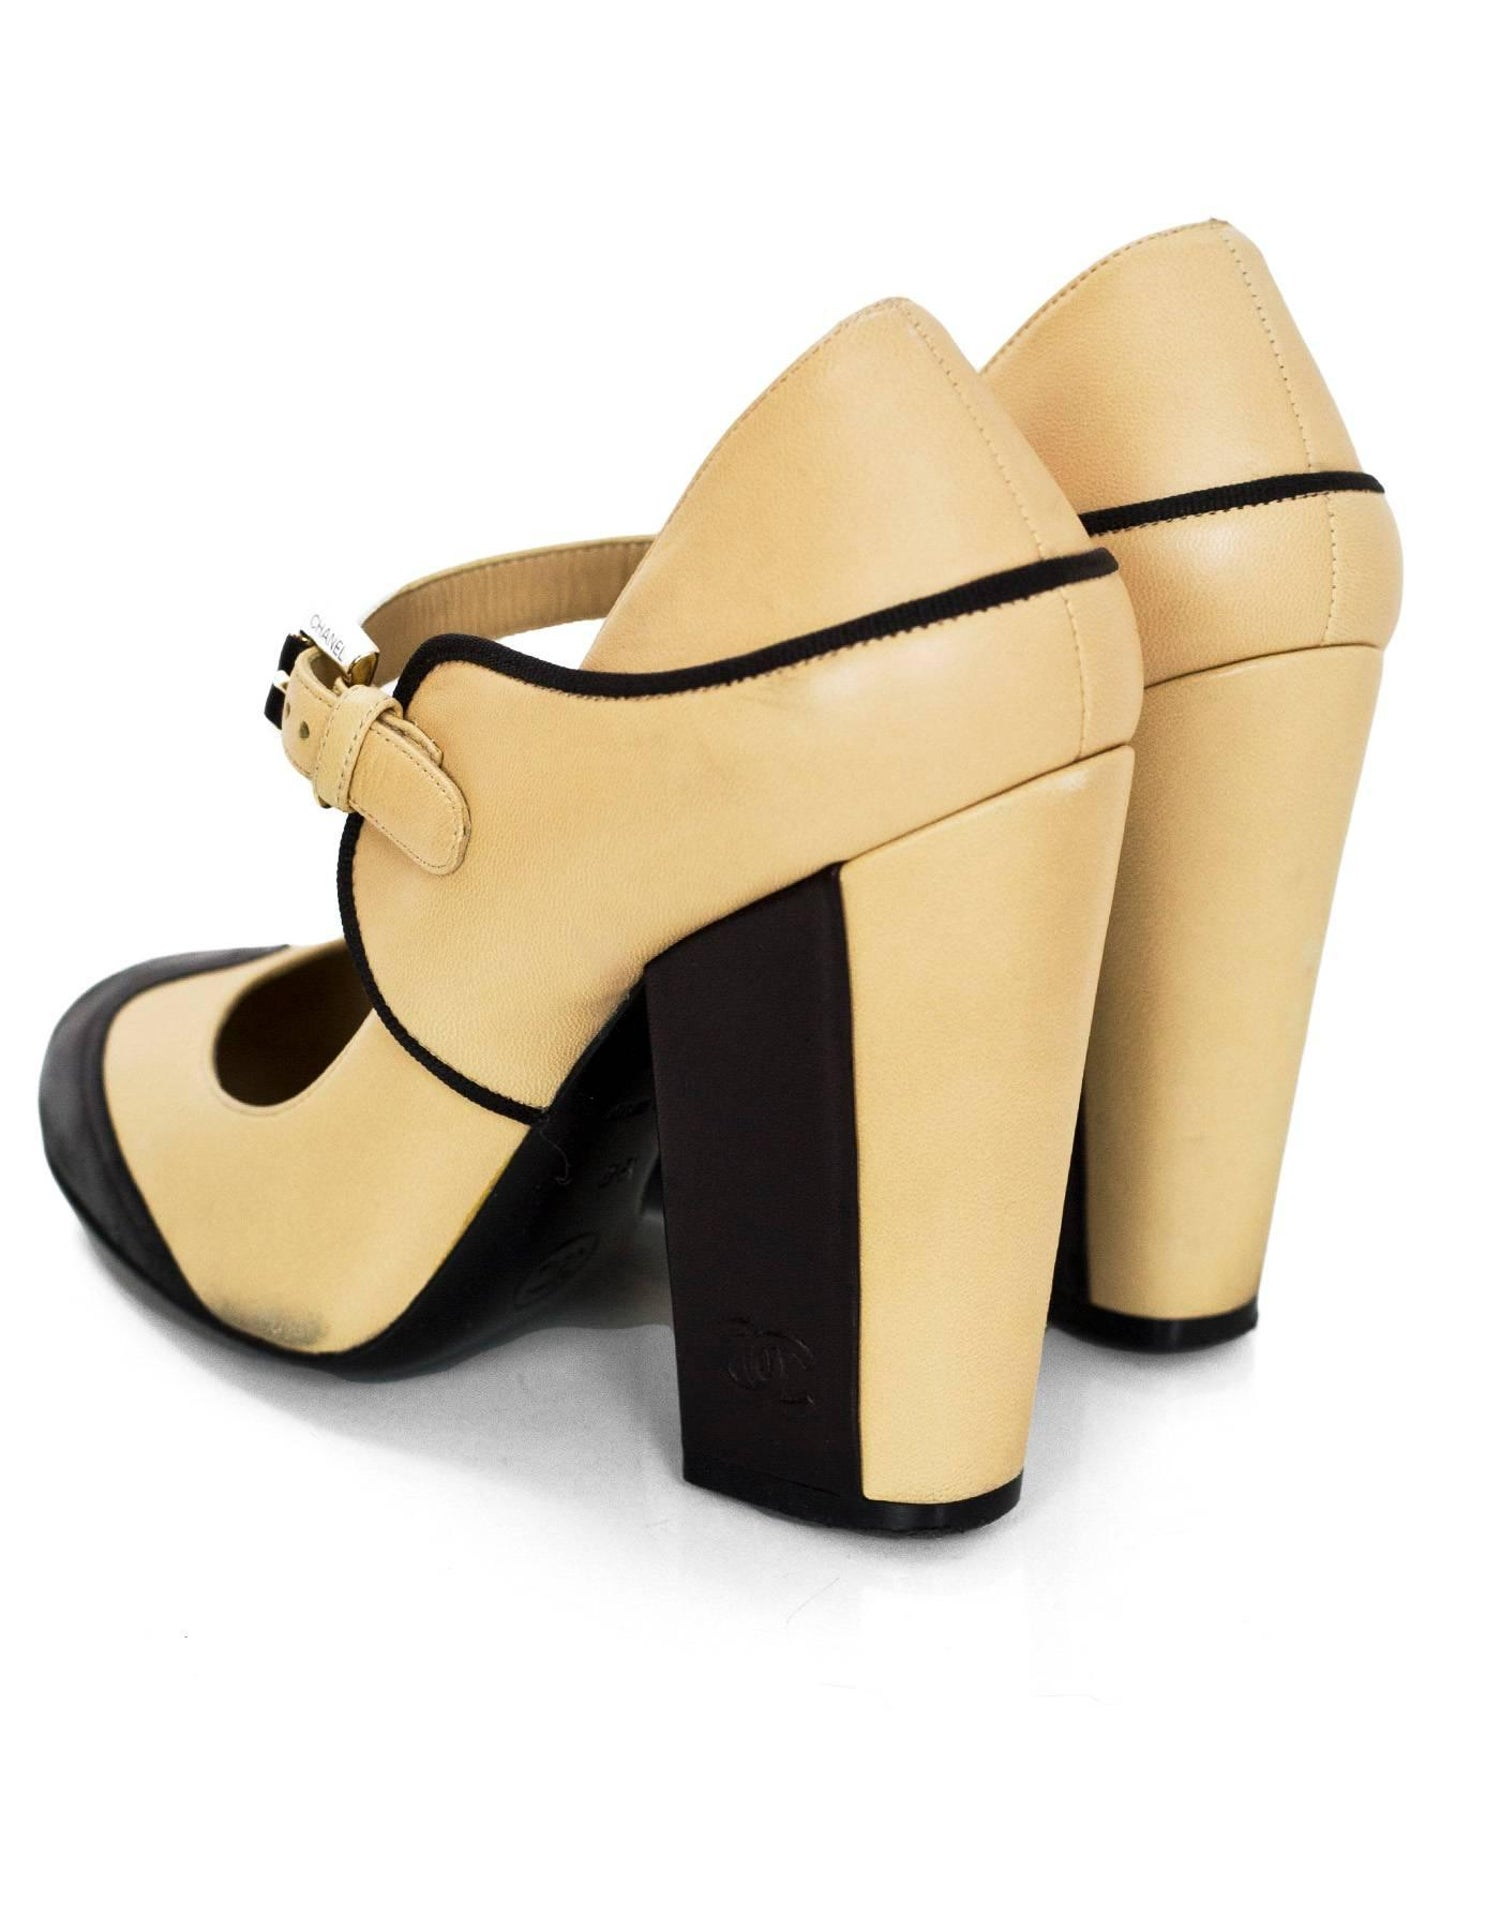 edc3d6b605b9 Chanel Beige and Black Leather Mary Jane Pumps Sz 36 For Sale at 1stdibs